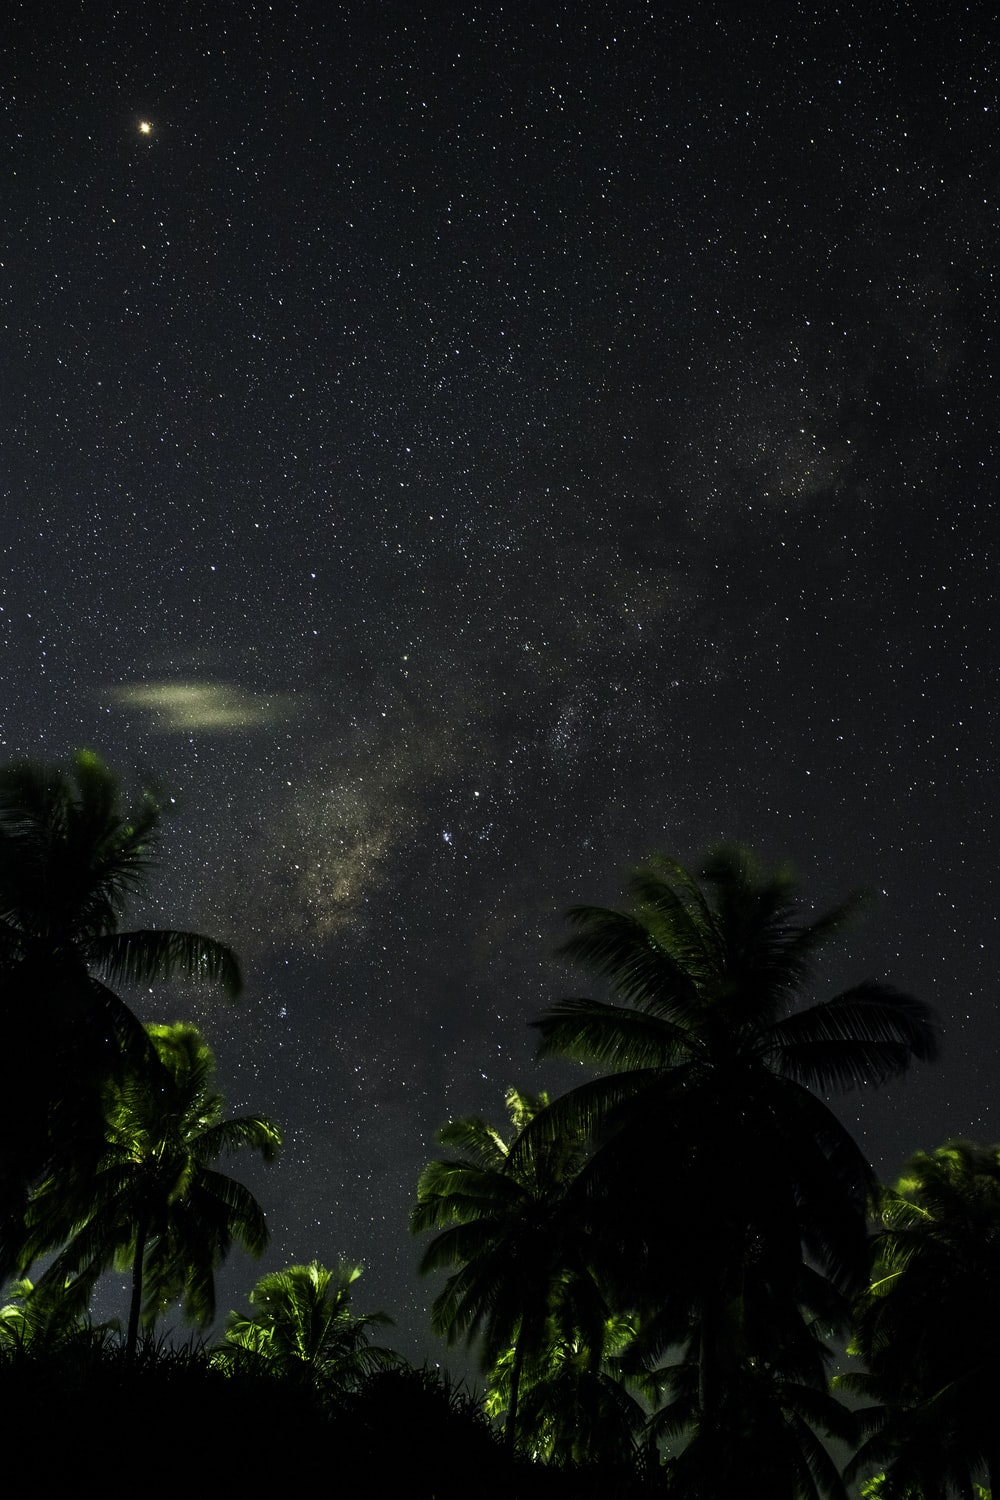 green trees under sky filled with stars